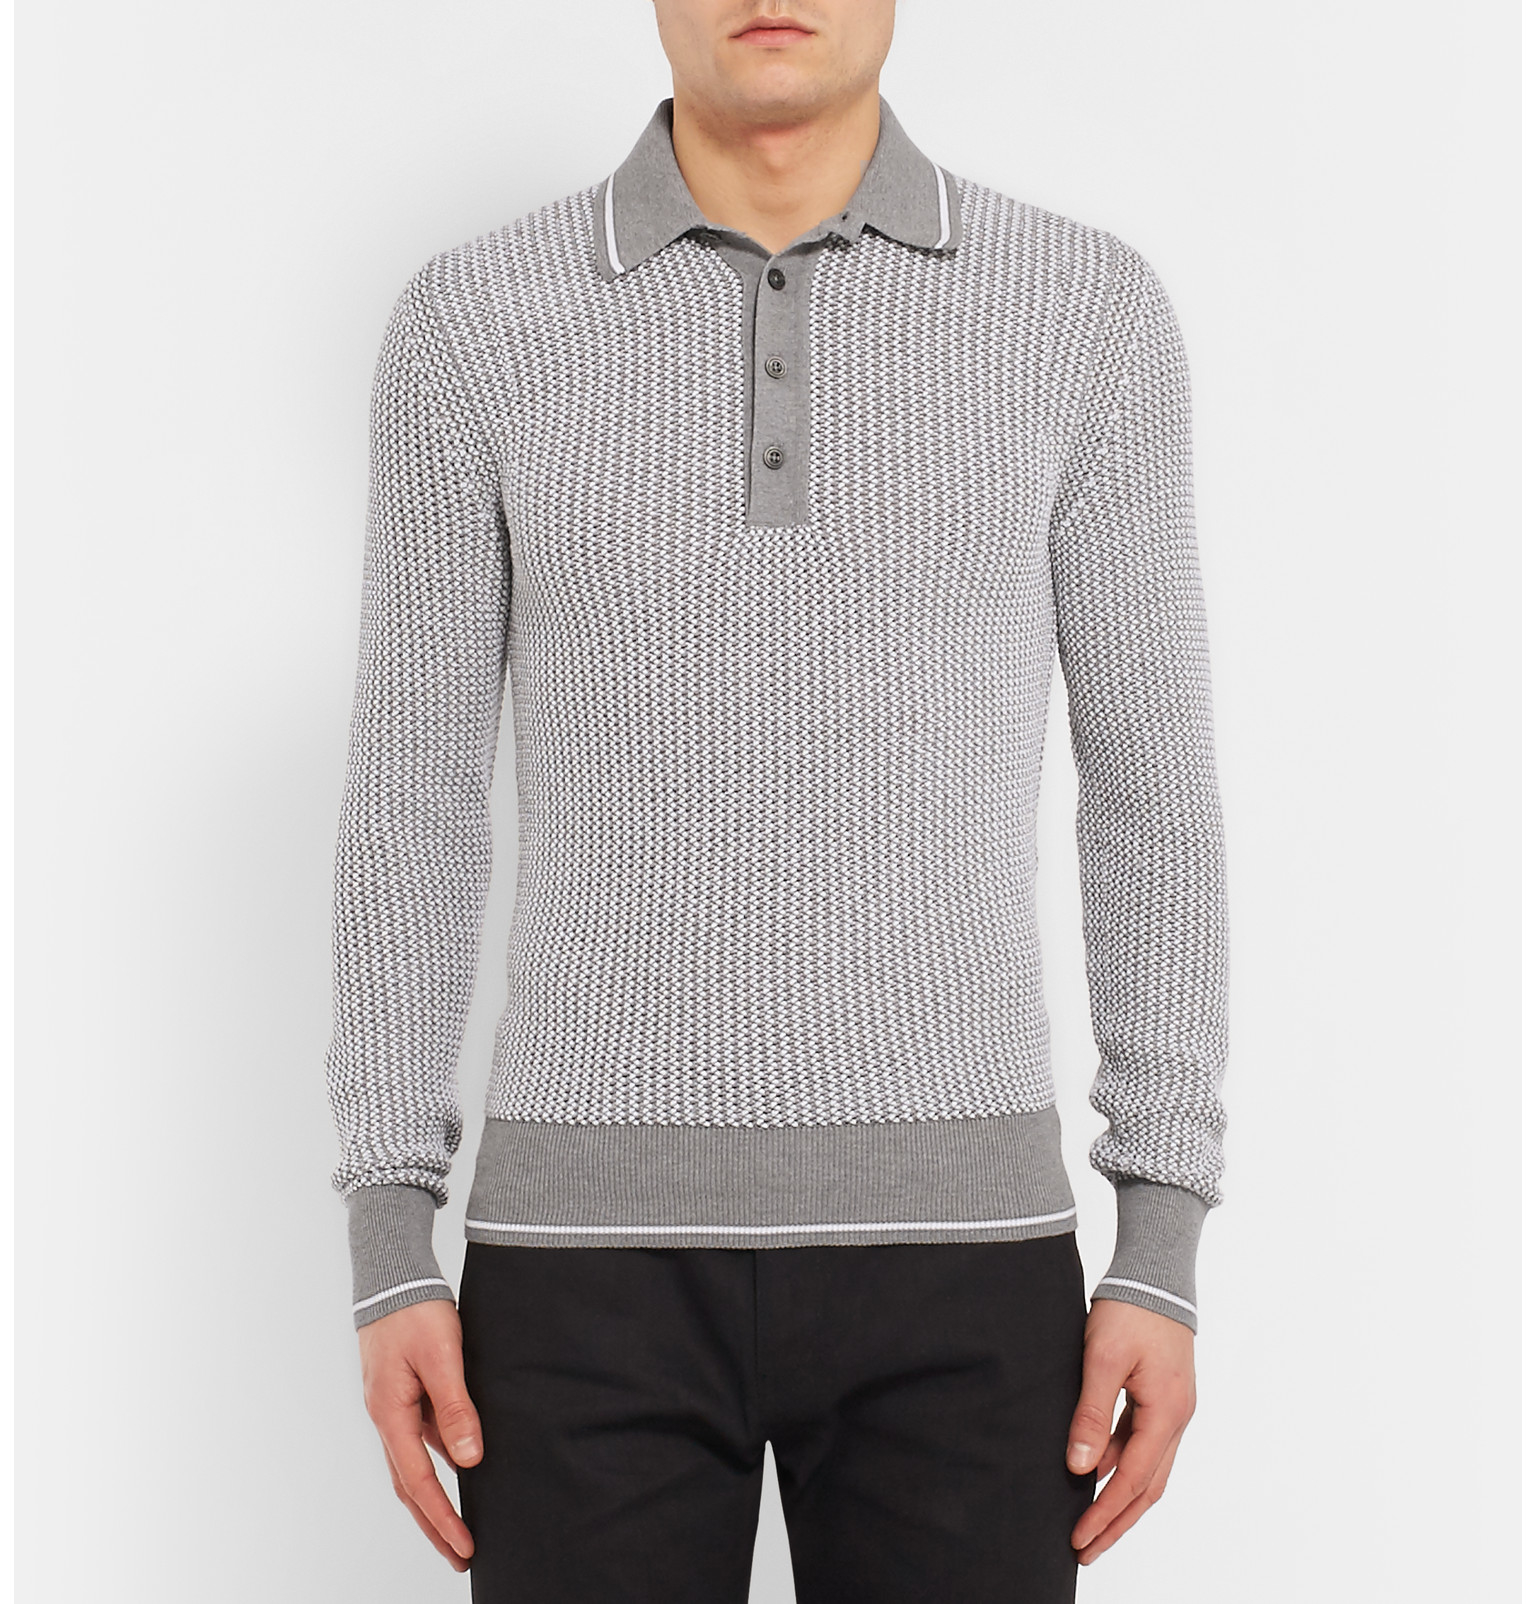 Tom Ford Slim Fit Cotton And Silk Blend Polo Shirt In Gray